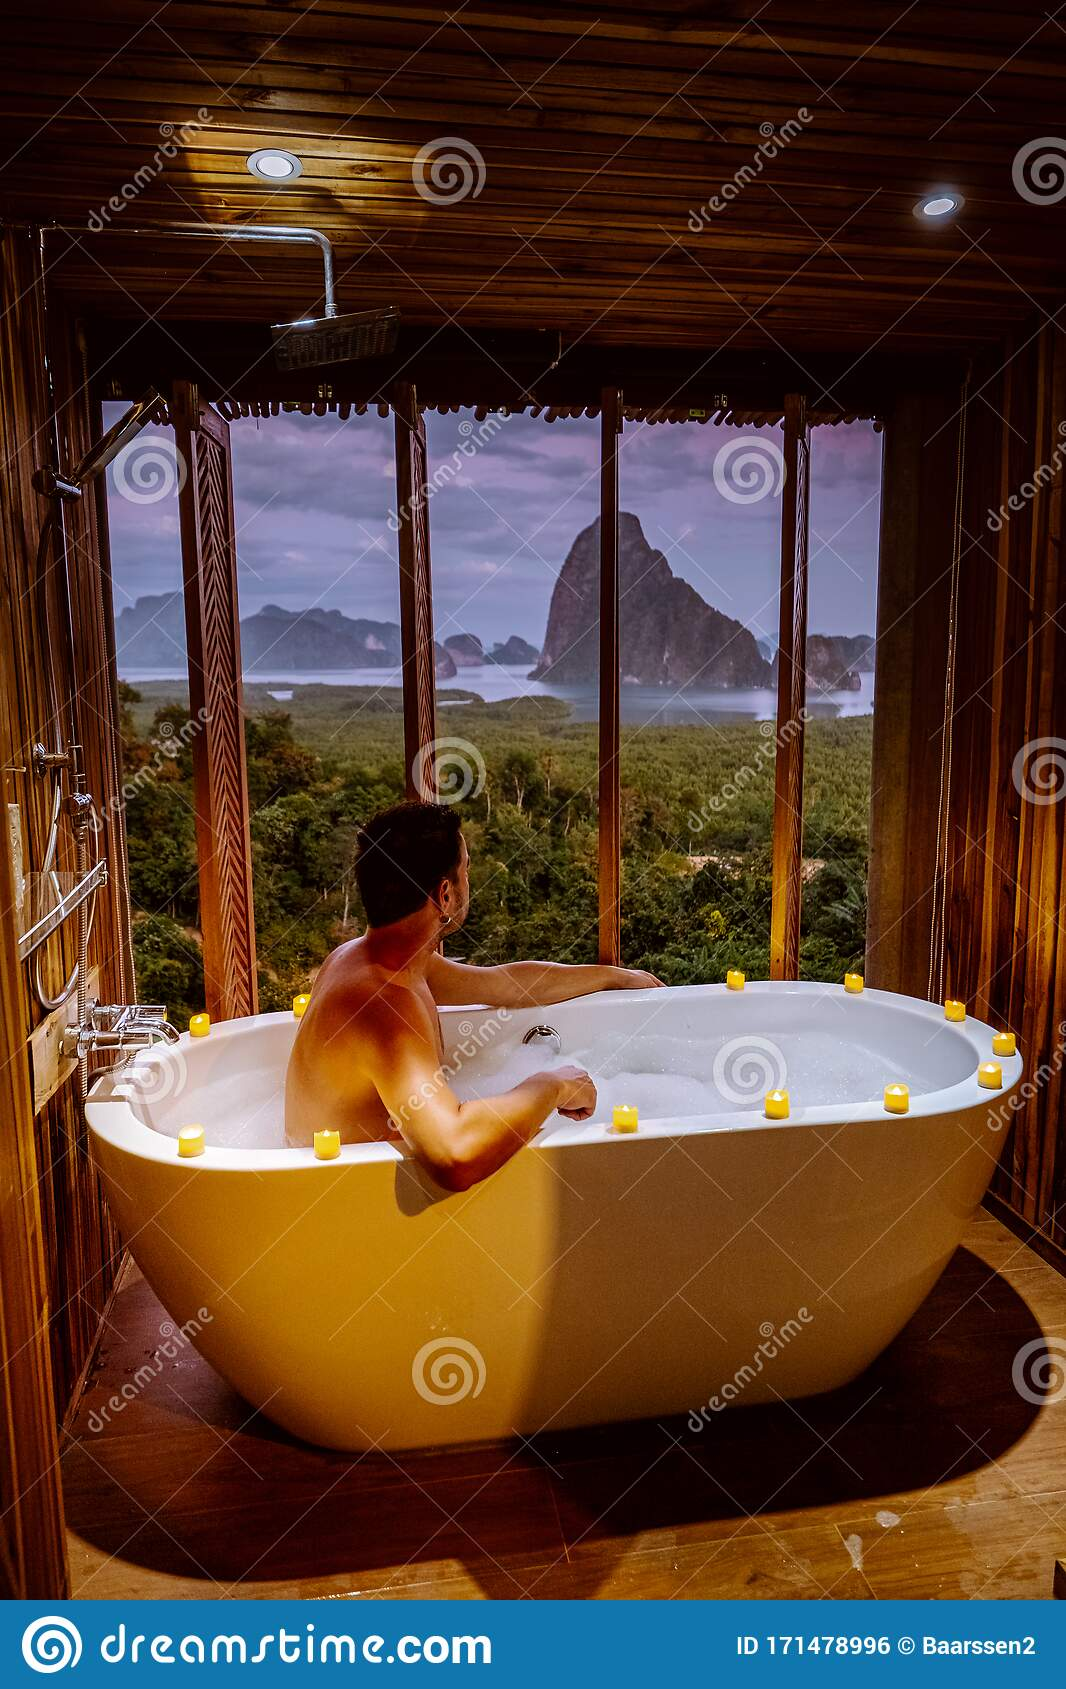 Young Men In Bath Tub With A Look Over The Bay Of Phangnga Bay Luxury Wooden Bathroom During Sunset Thailand Asia Stock Photo Image Of Hotel Cliff 171478996